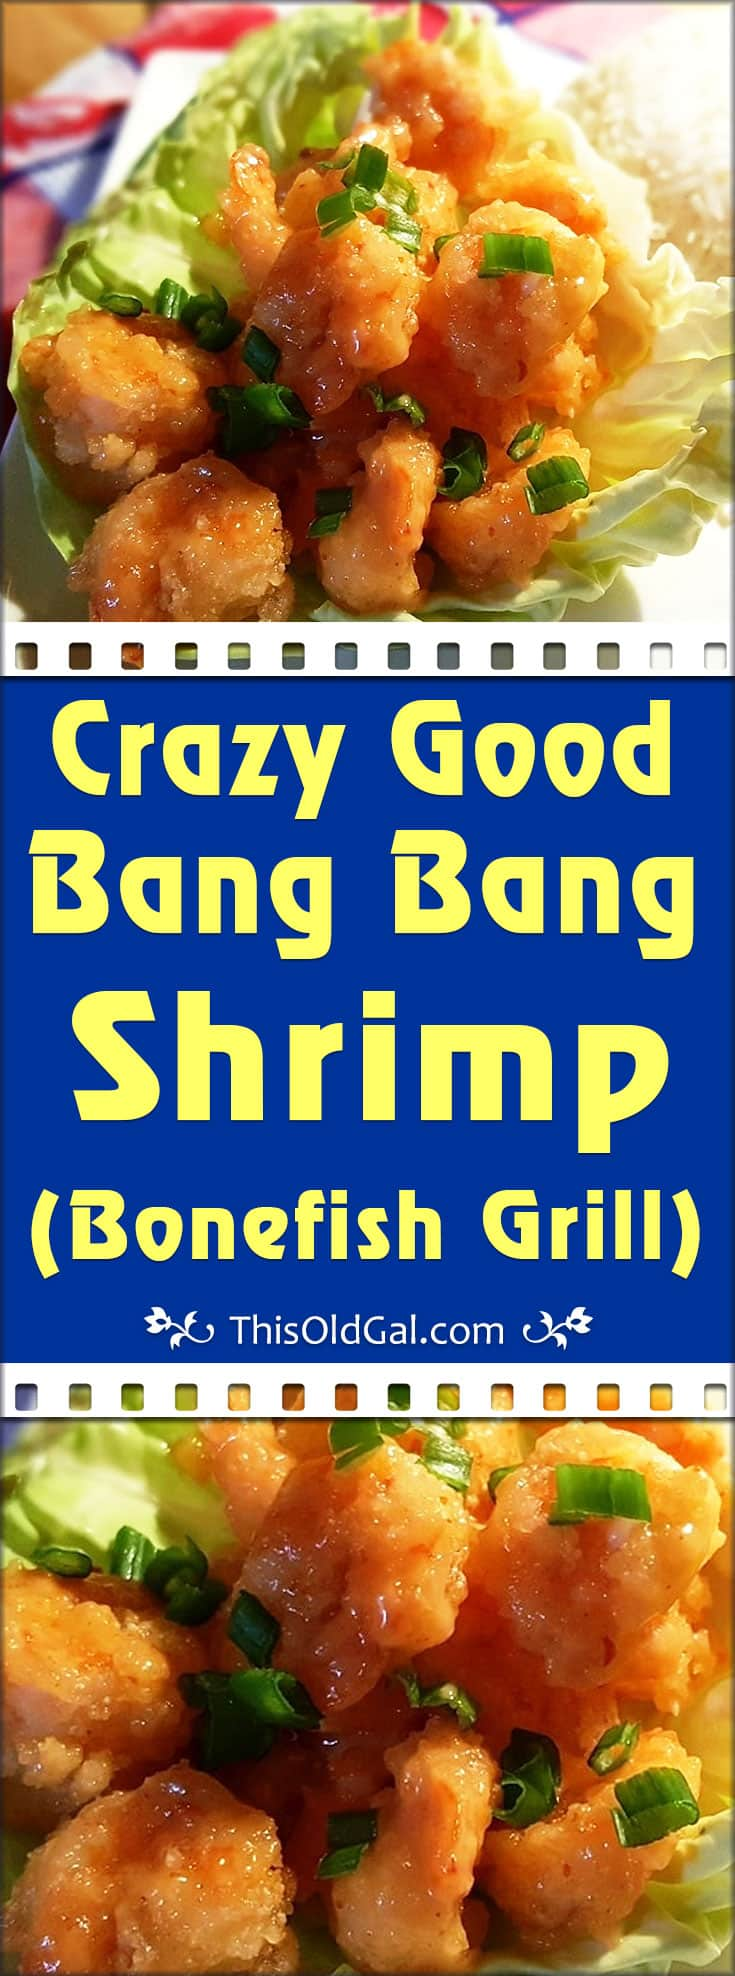 Crazy Good Bang Bang Shrimp (Bonefish Grill)